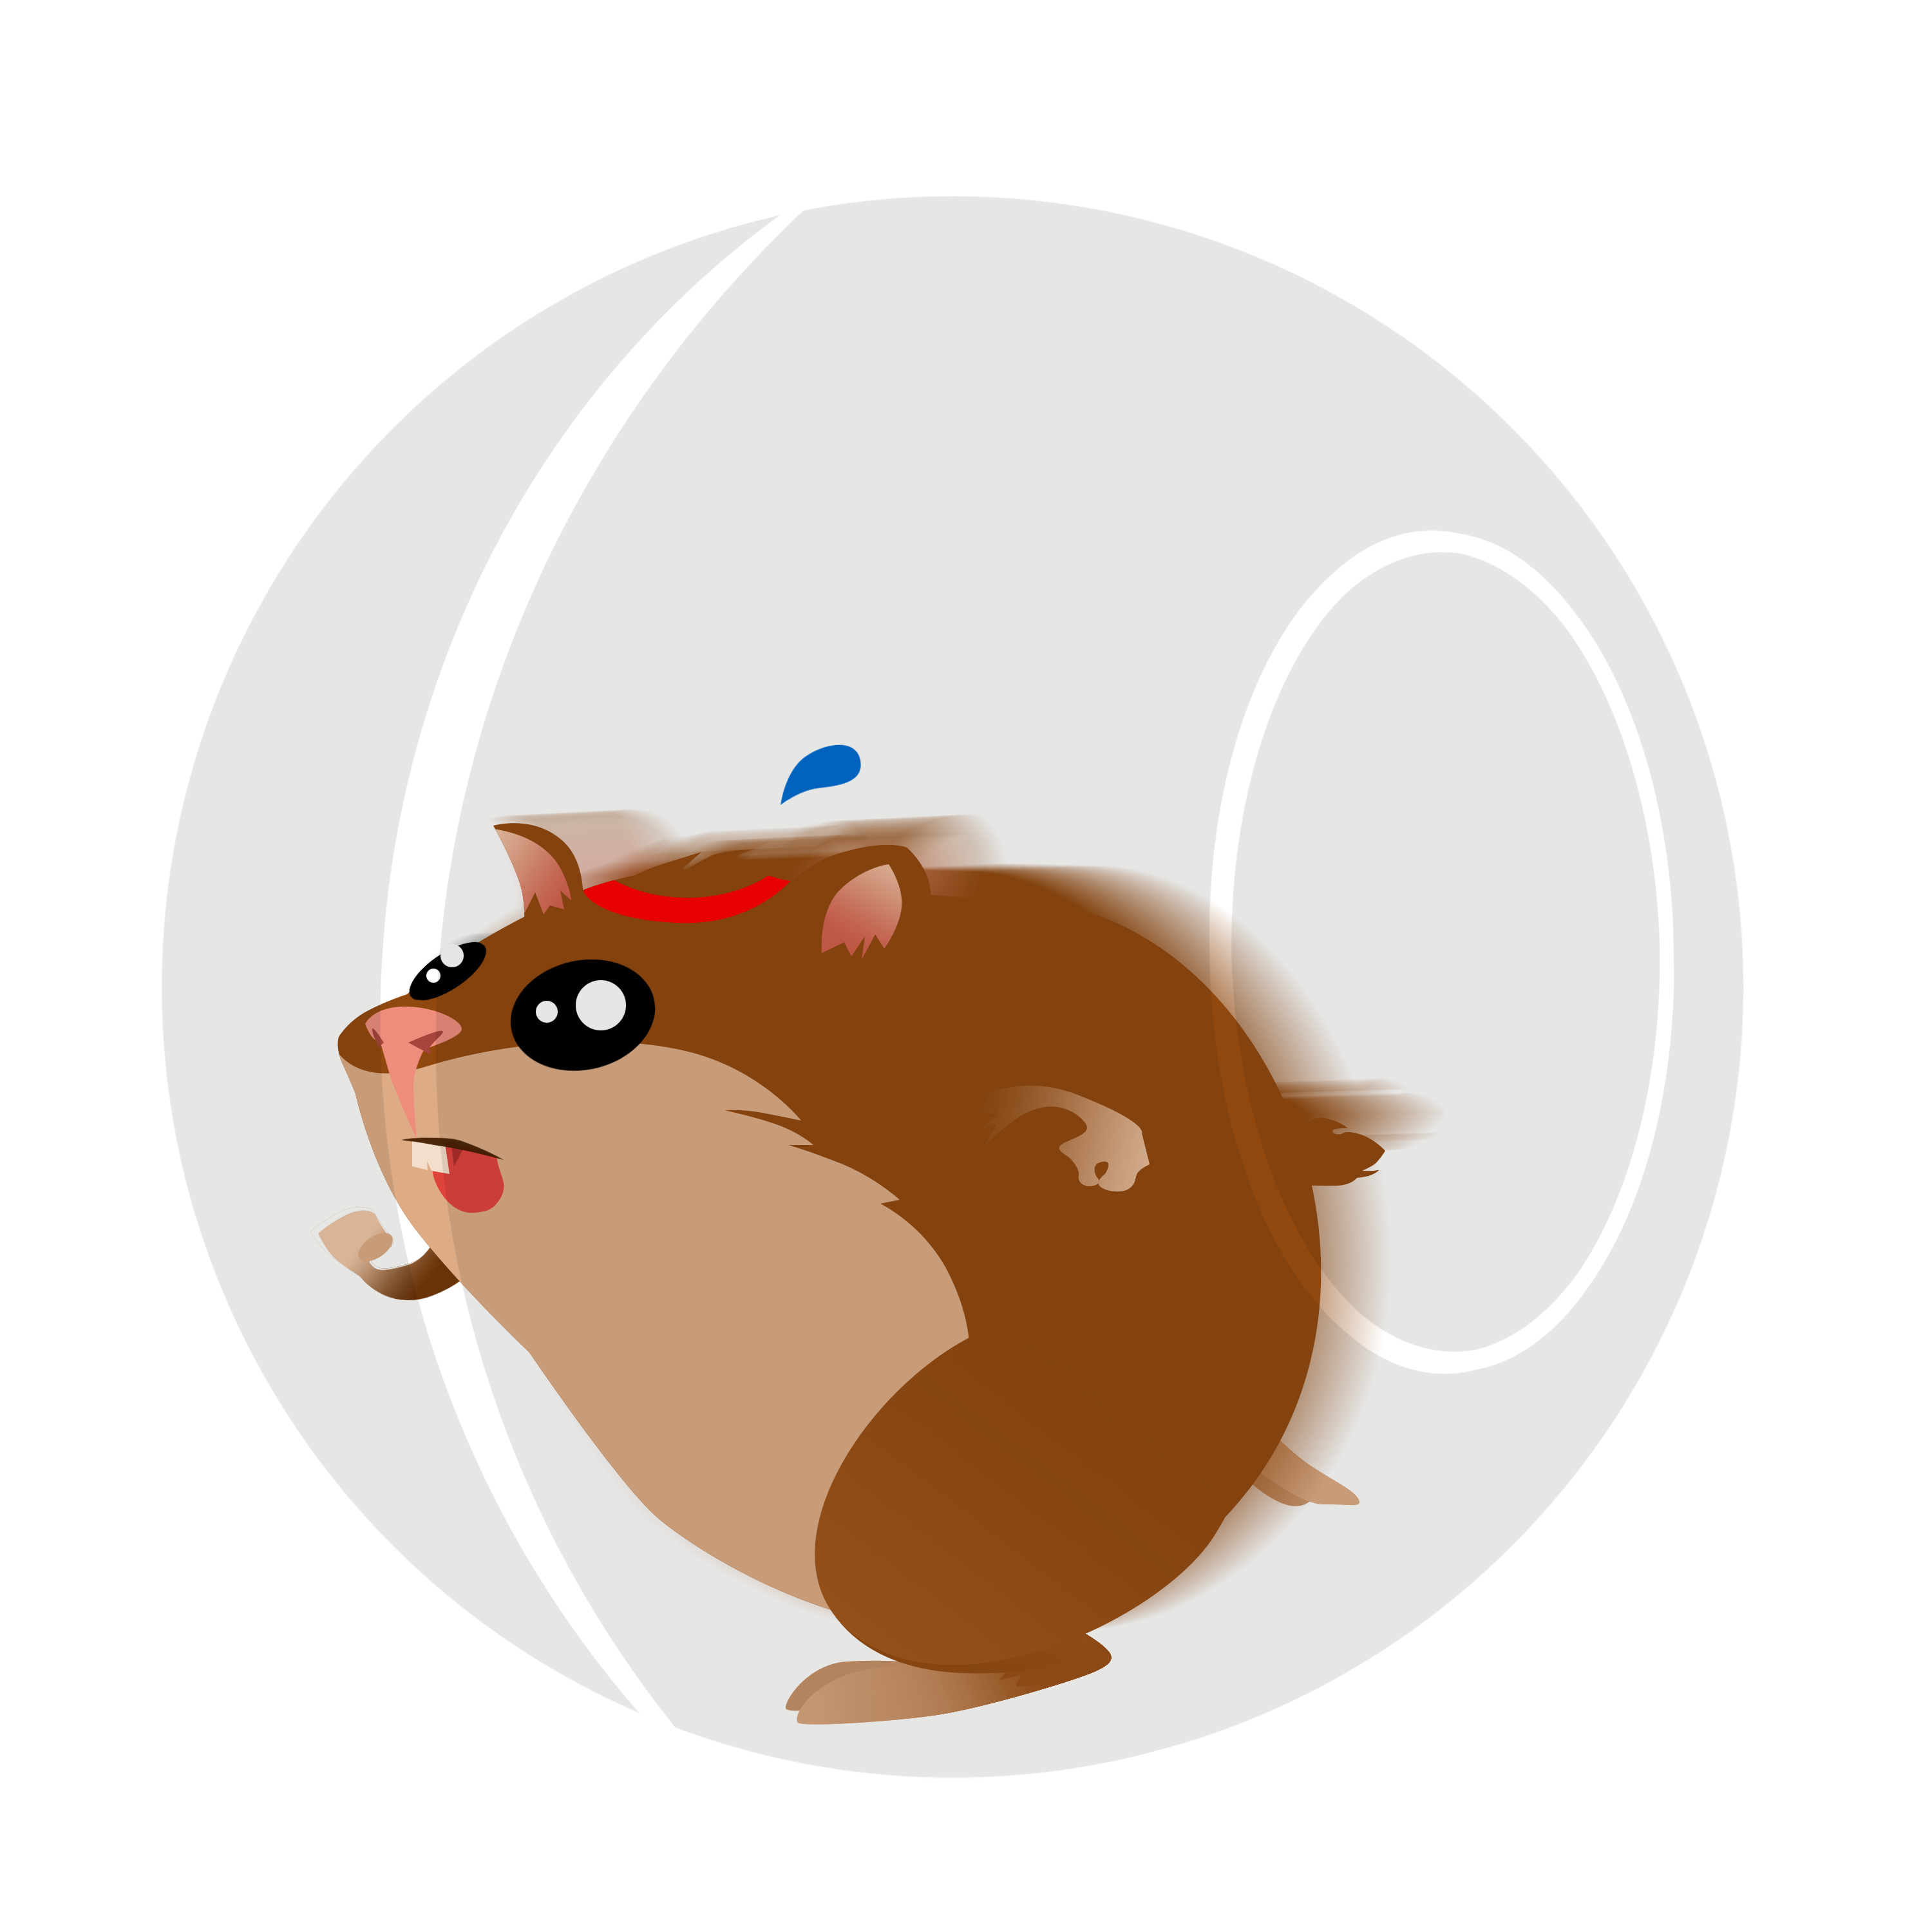 Free on dumielauxepices net. Hamster clipart hamster ball